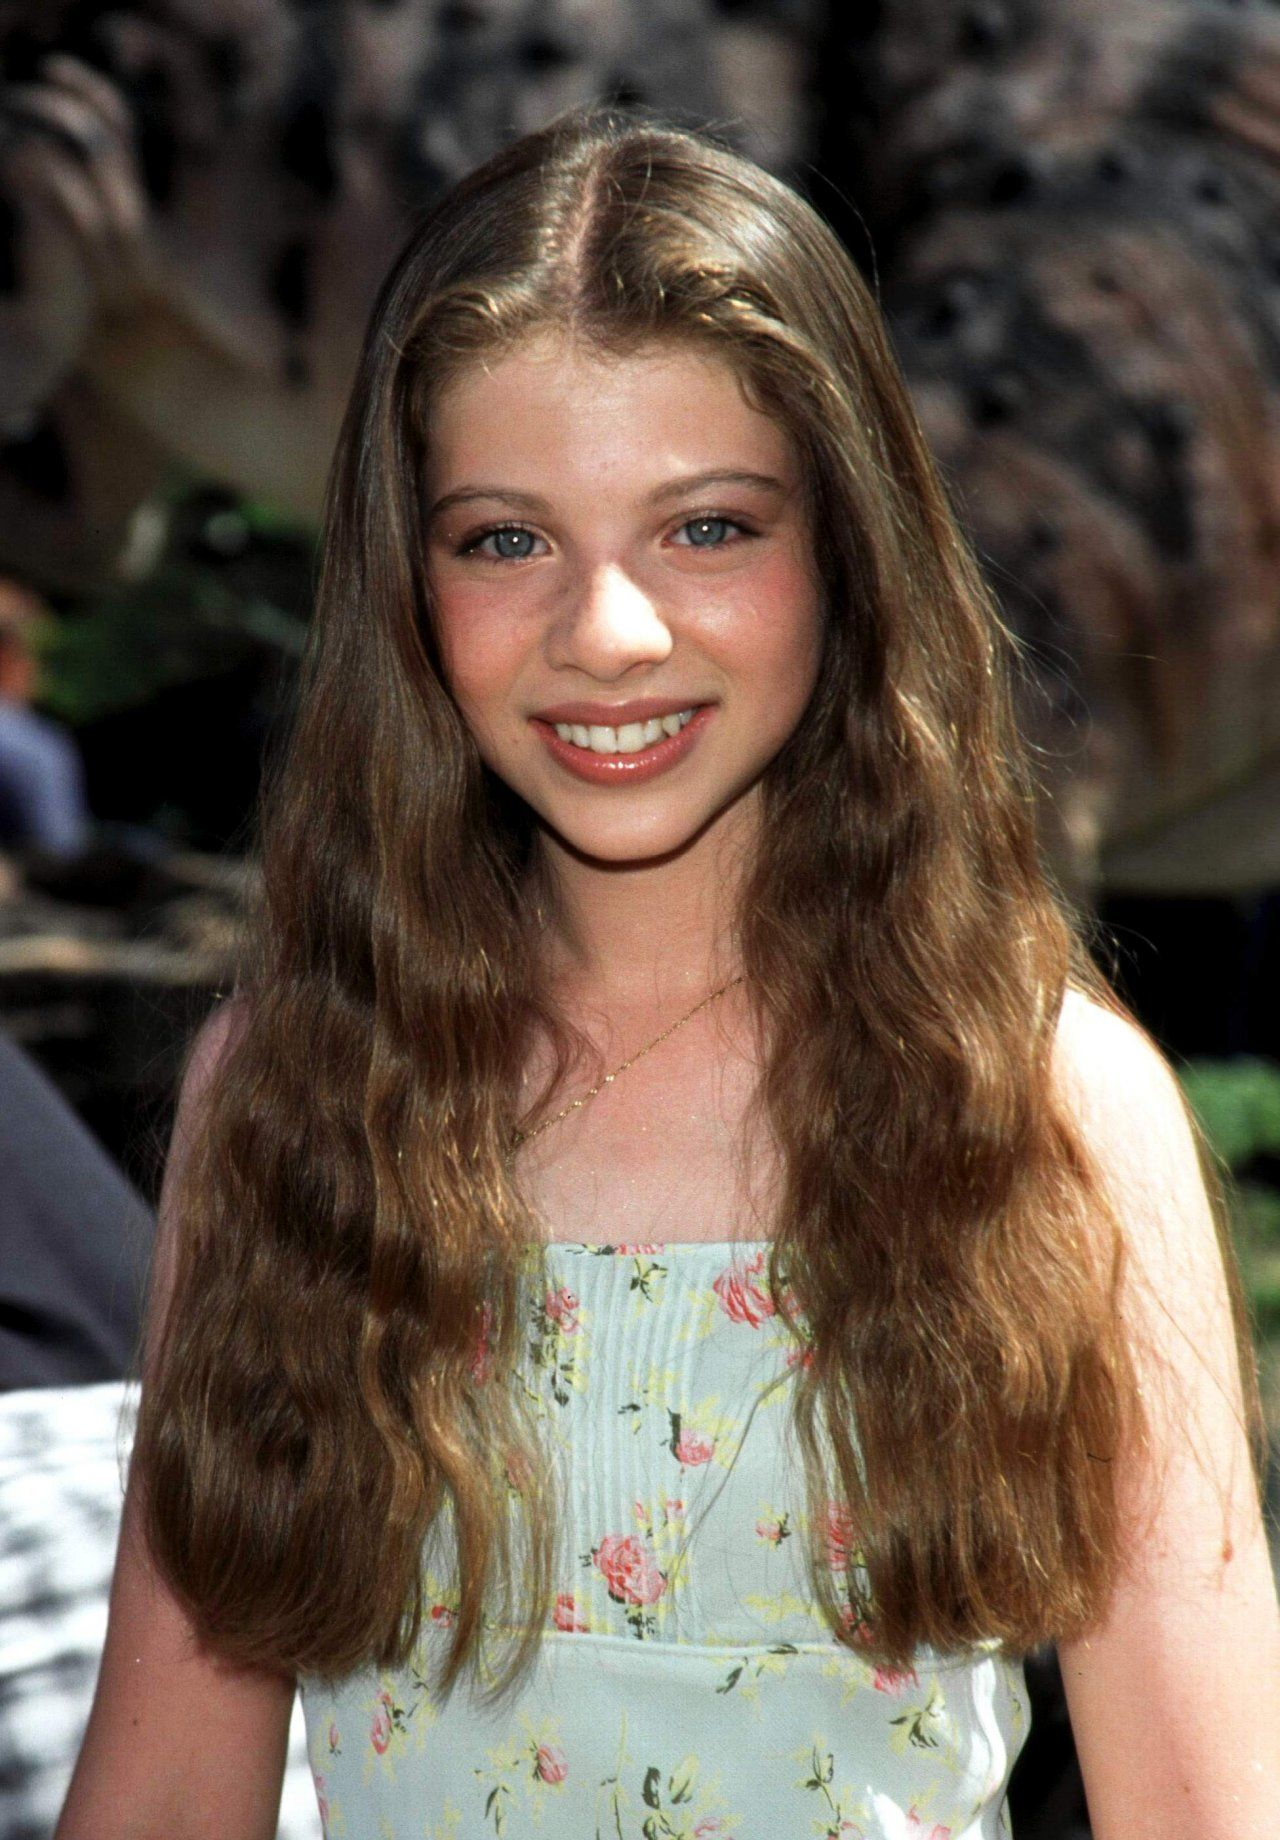 Young Michelle Trachtenberg nude photos 2019